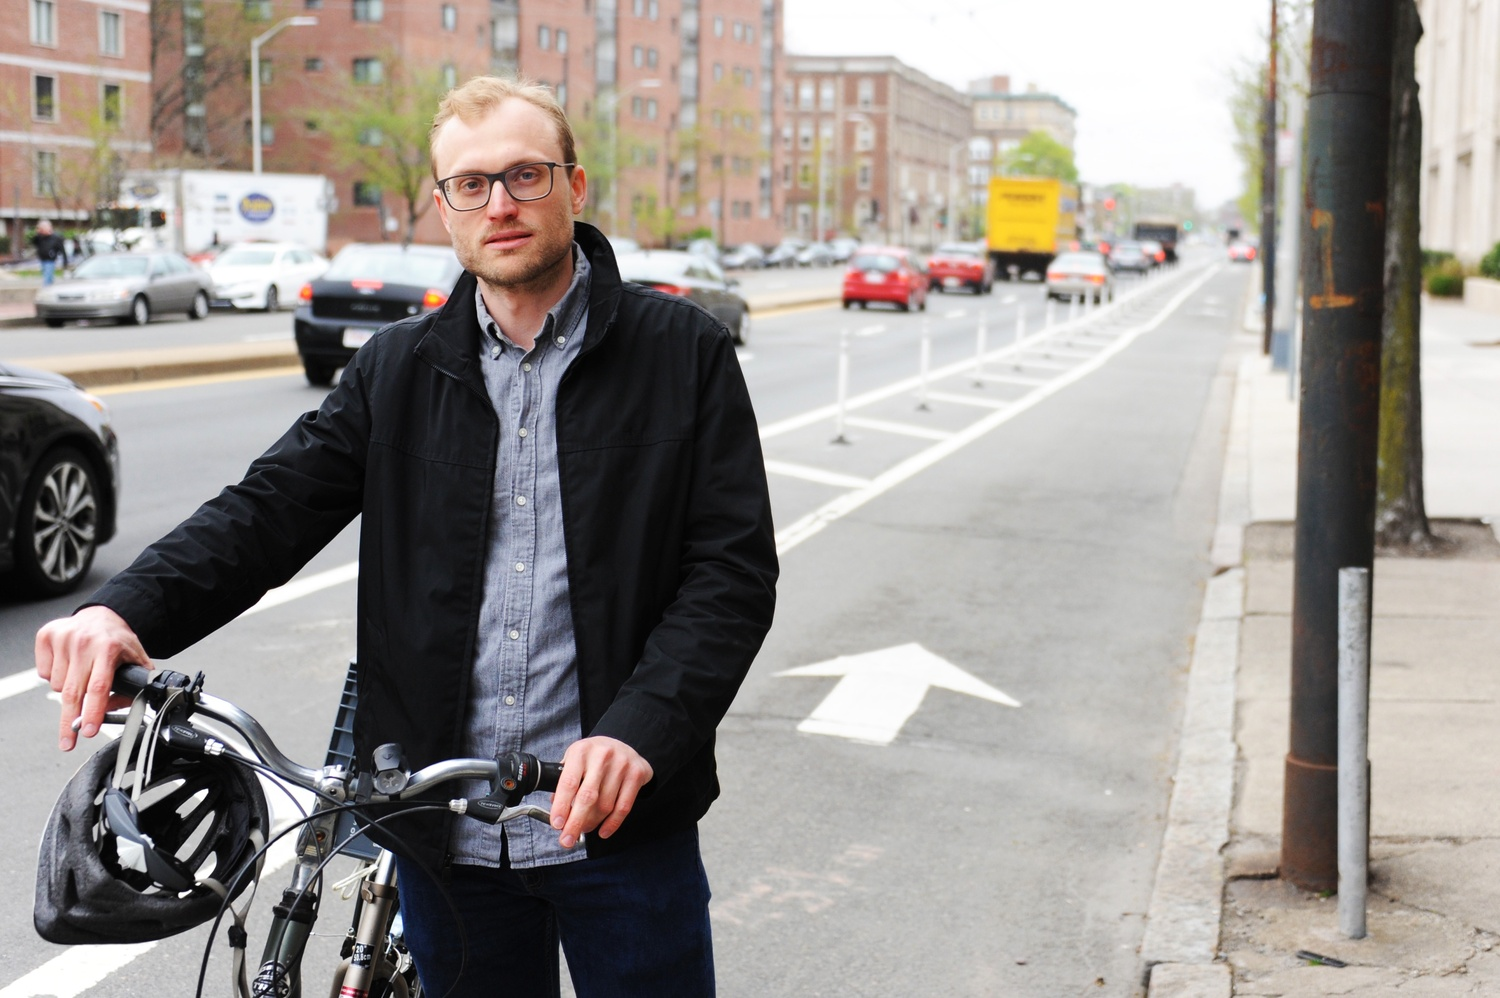 Nathanael Fillmore, a Cambridge-based bicycle activist, stands in front of a protected bike lane he advocated for on Massachusetts Ave.